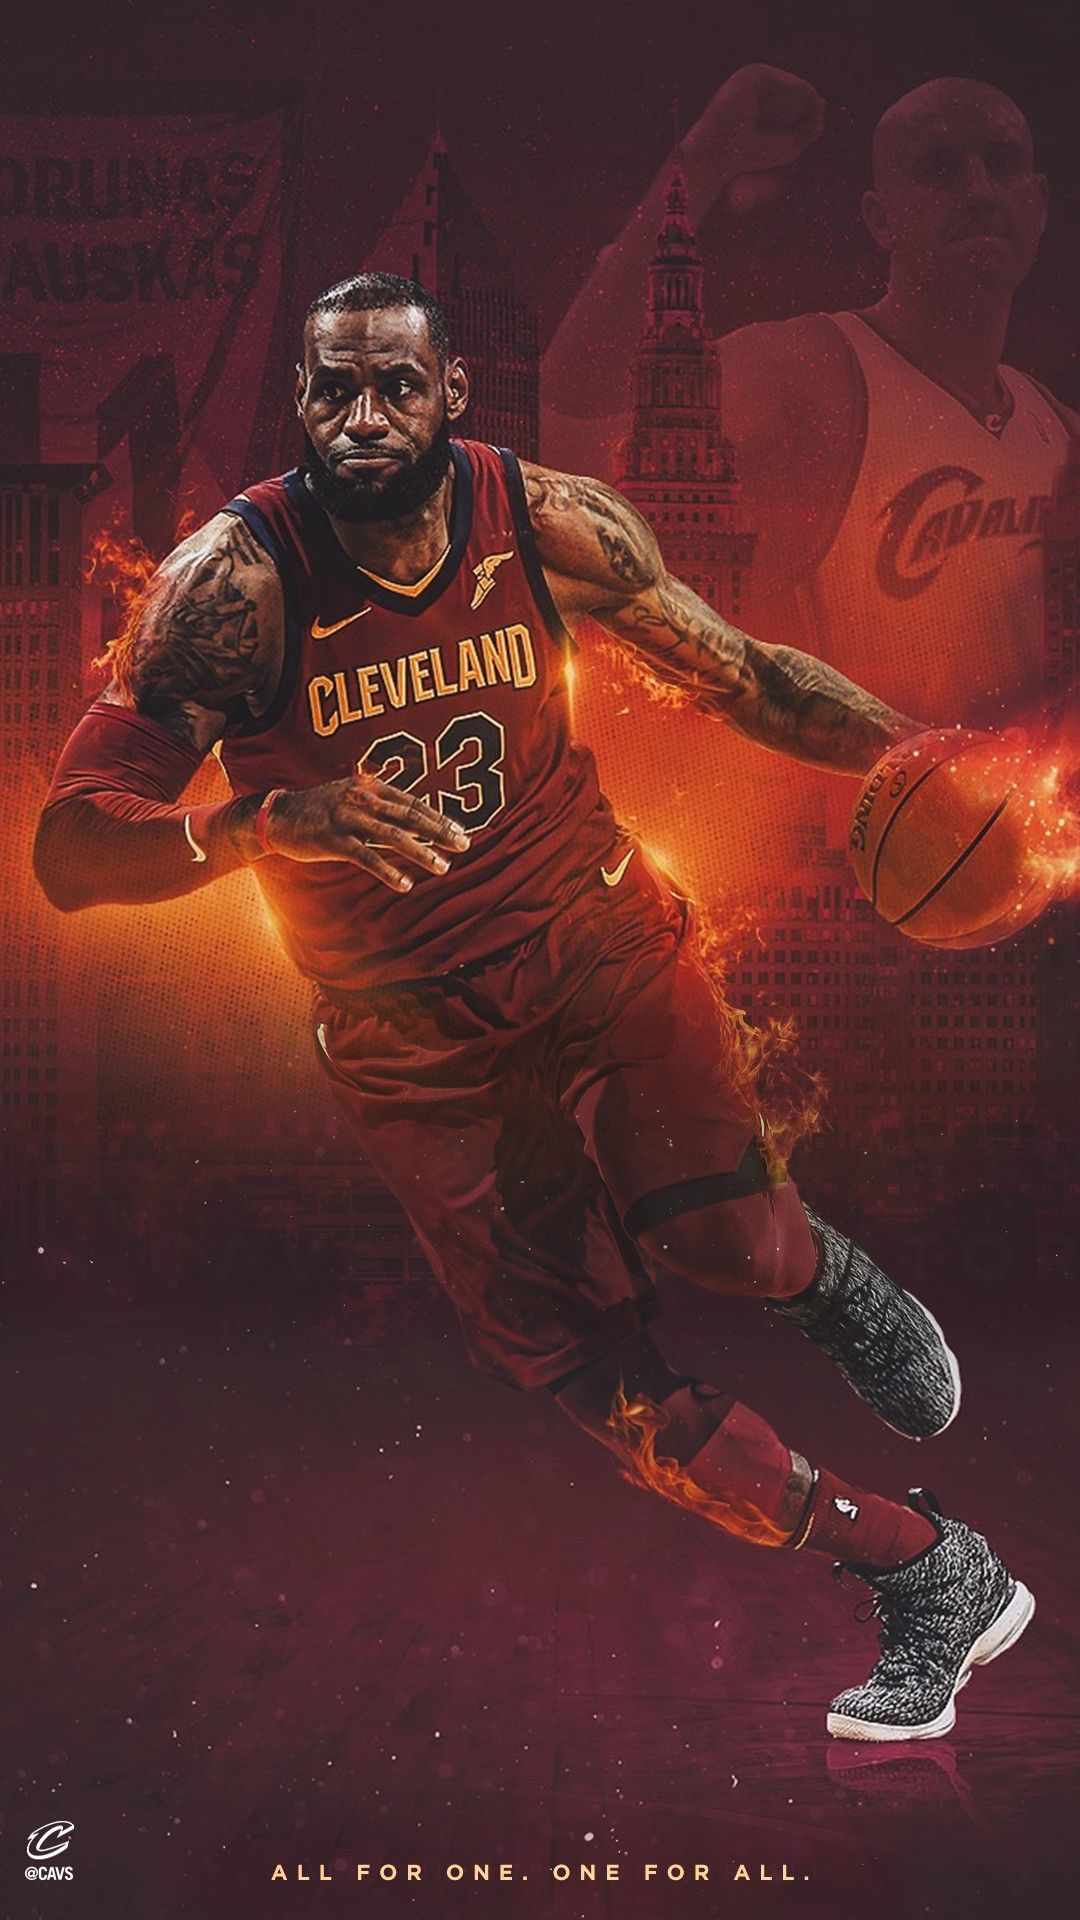 Lebron James Hd Iphone Wallpaper Hupages Download Iphone Wallpapers Lebron James Wallpapers Lebron James Lebron James Cleveland